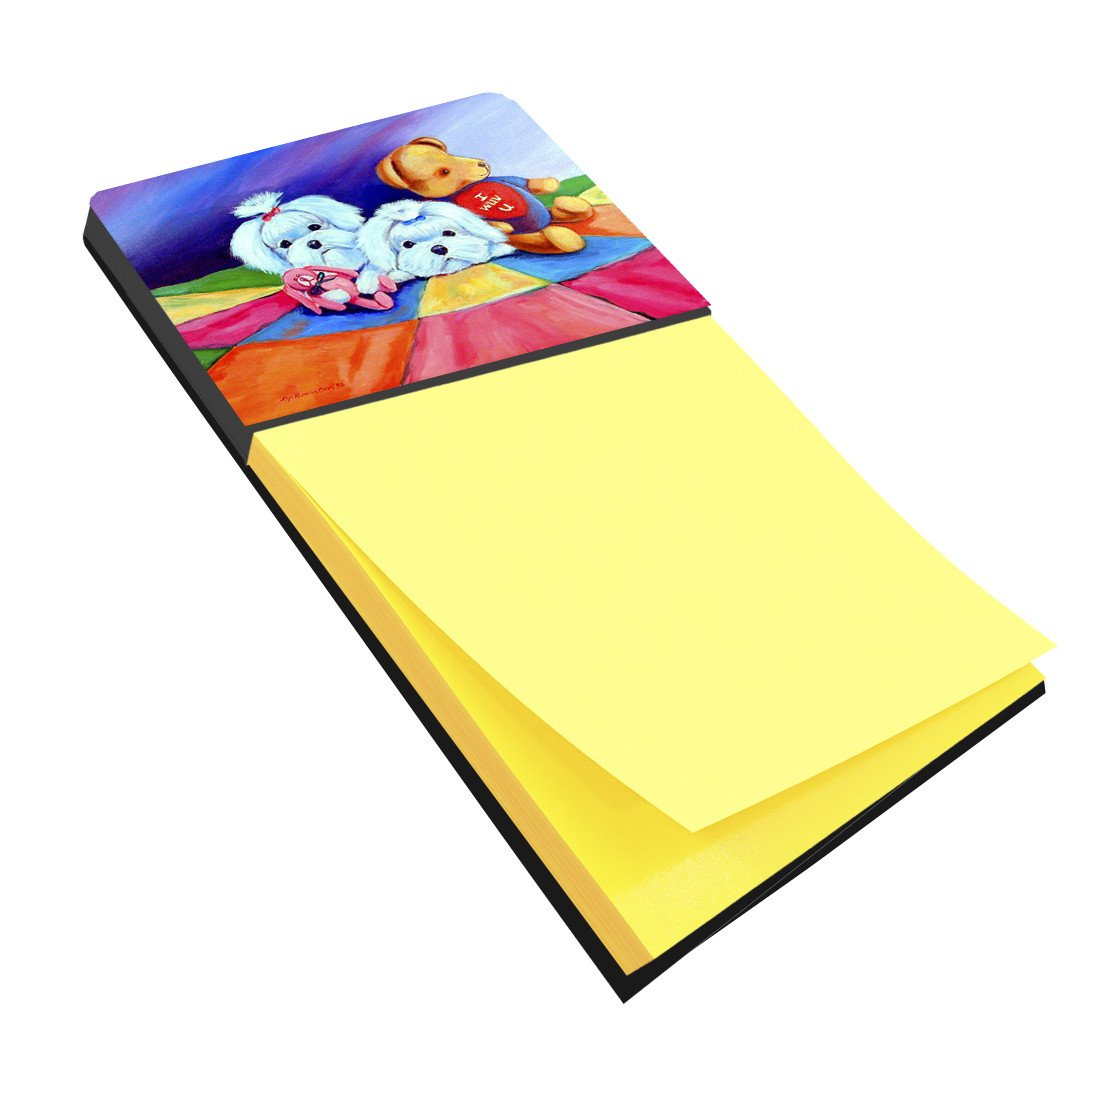 Maltese Refiillable Sticky Note Holder or Postit Note Dispenser 7515SN by Caroline's Treasures